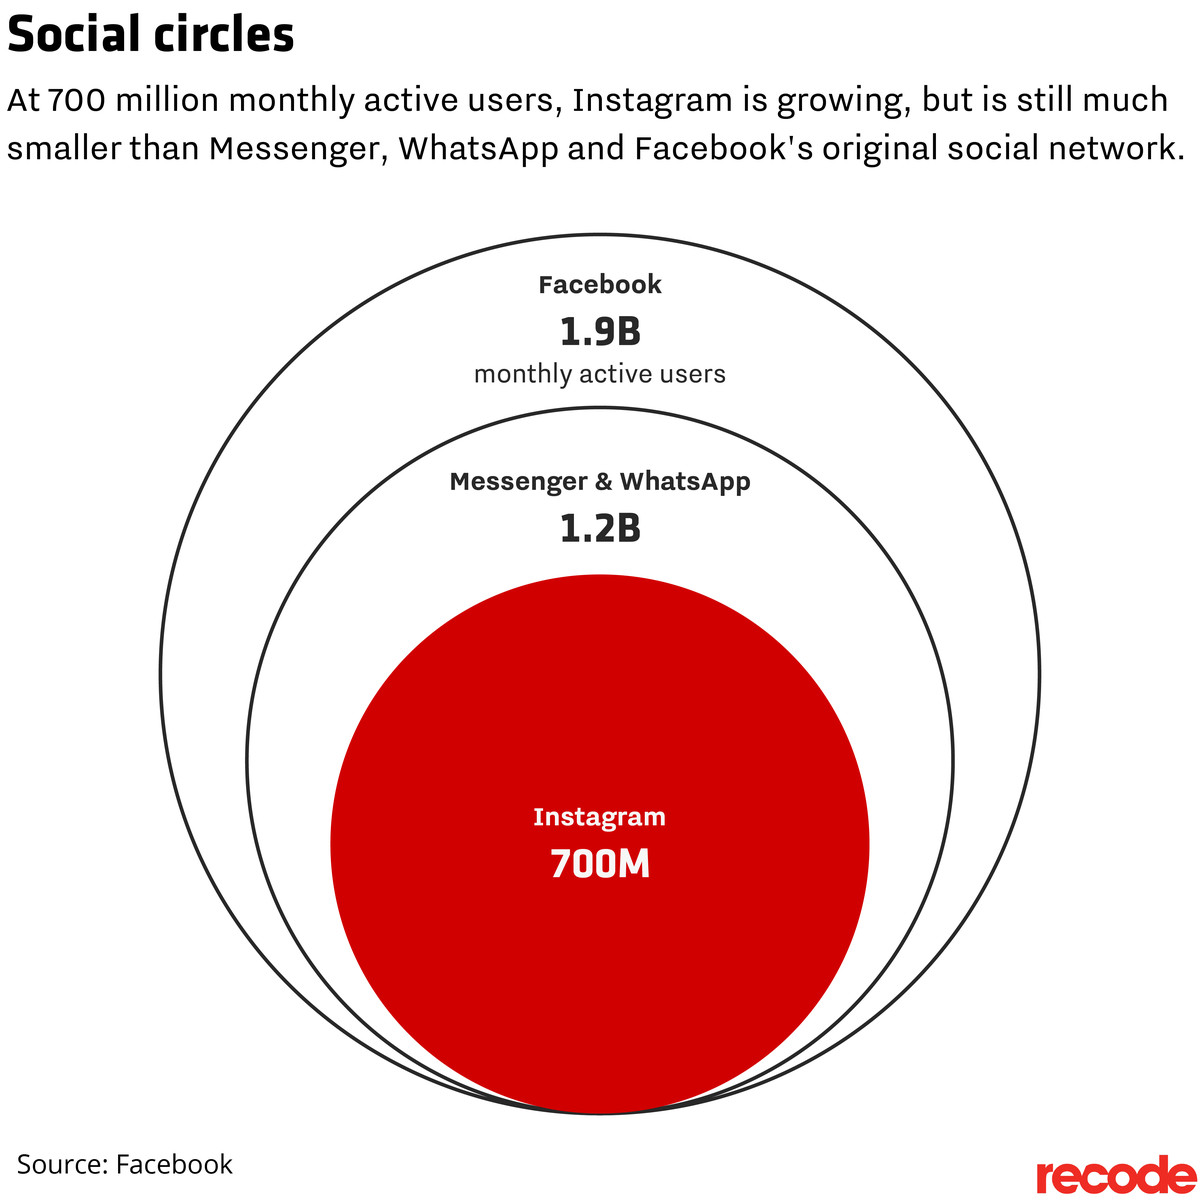 This image shows that Instagram is growing faster than ever and now has 700 million users